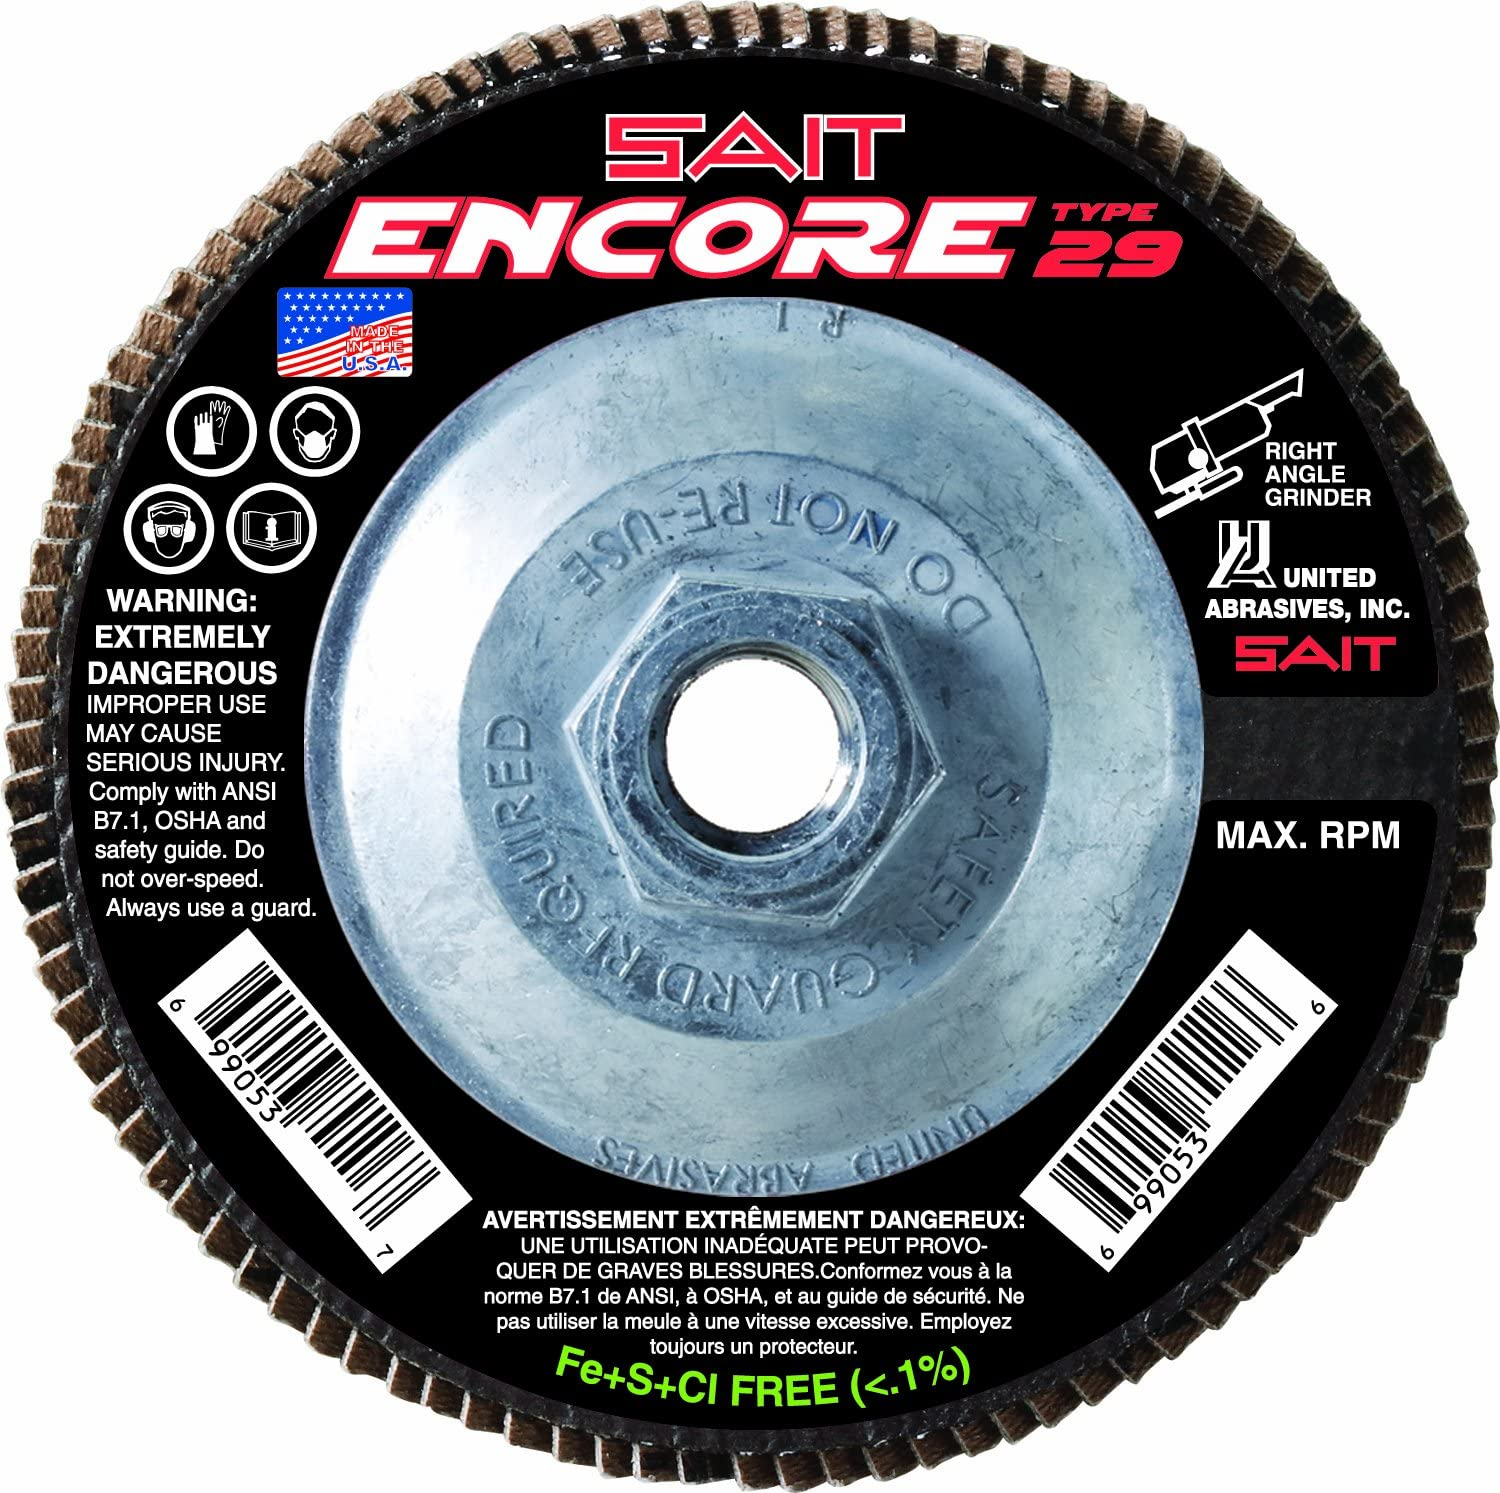 B004TNEXIO United Abrasives-SAIT 71256 Encore High Performance Flap Disc, Type 29, 6-Inch Diameter, 5/8-11 Arbor, Z 40X, 10-Pack 81dP-3WQb7L.SL1500_